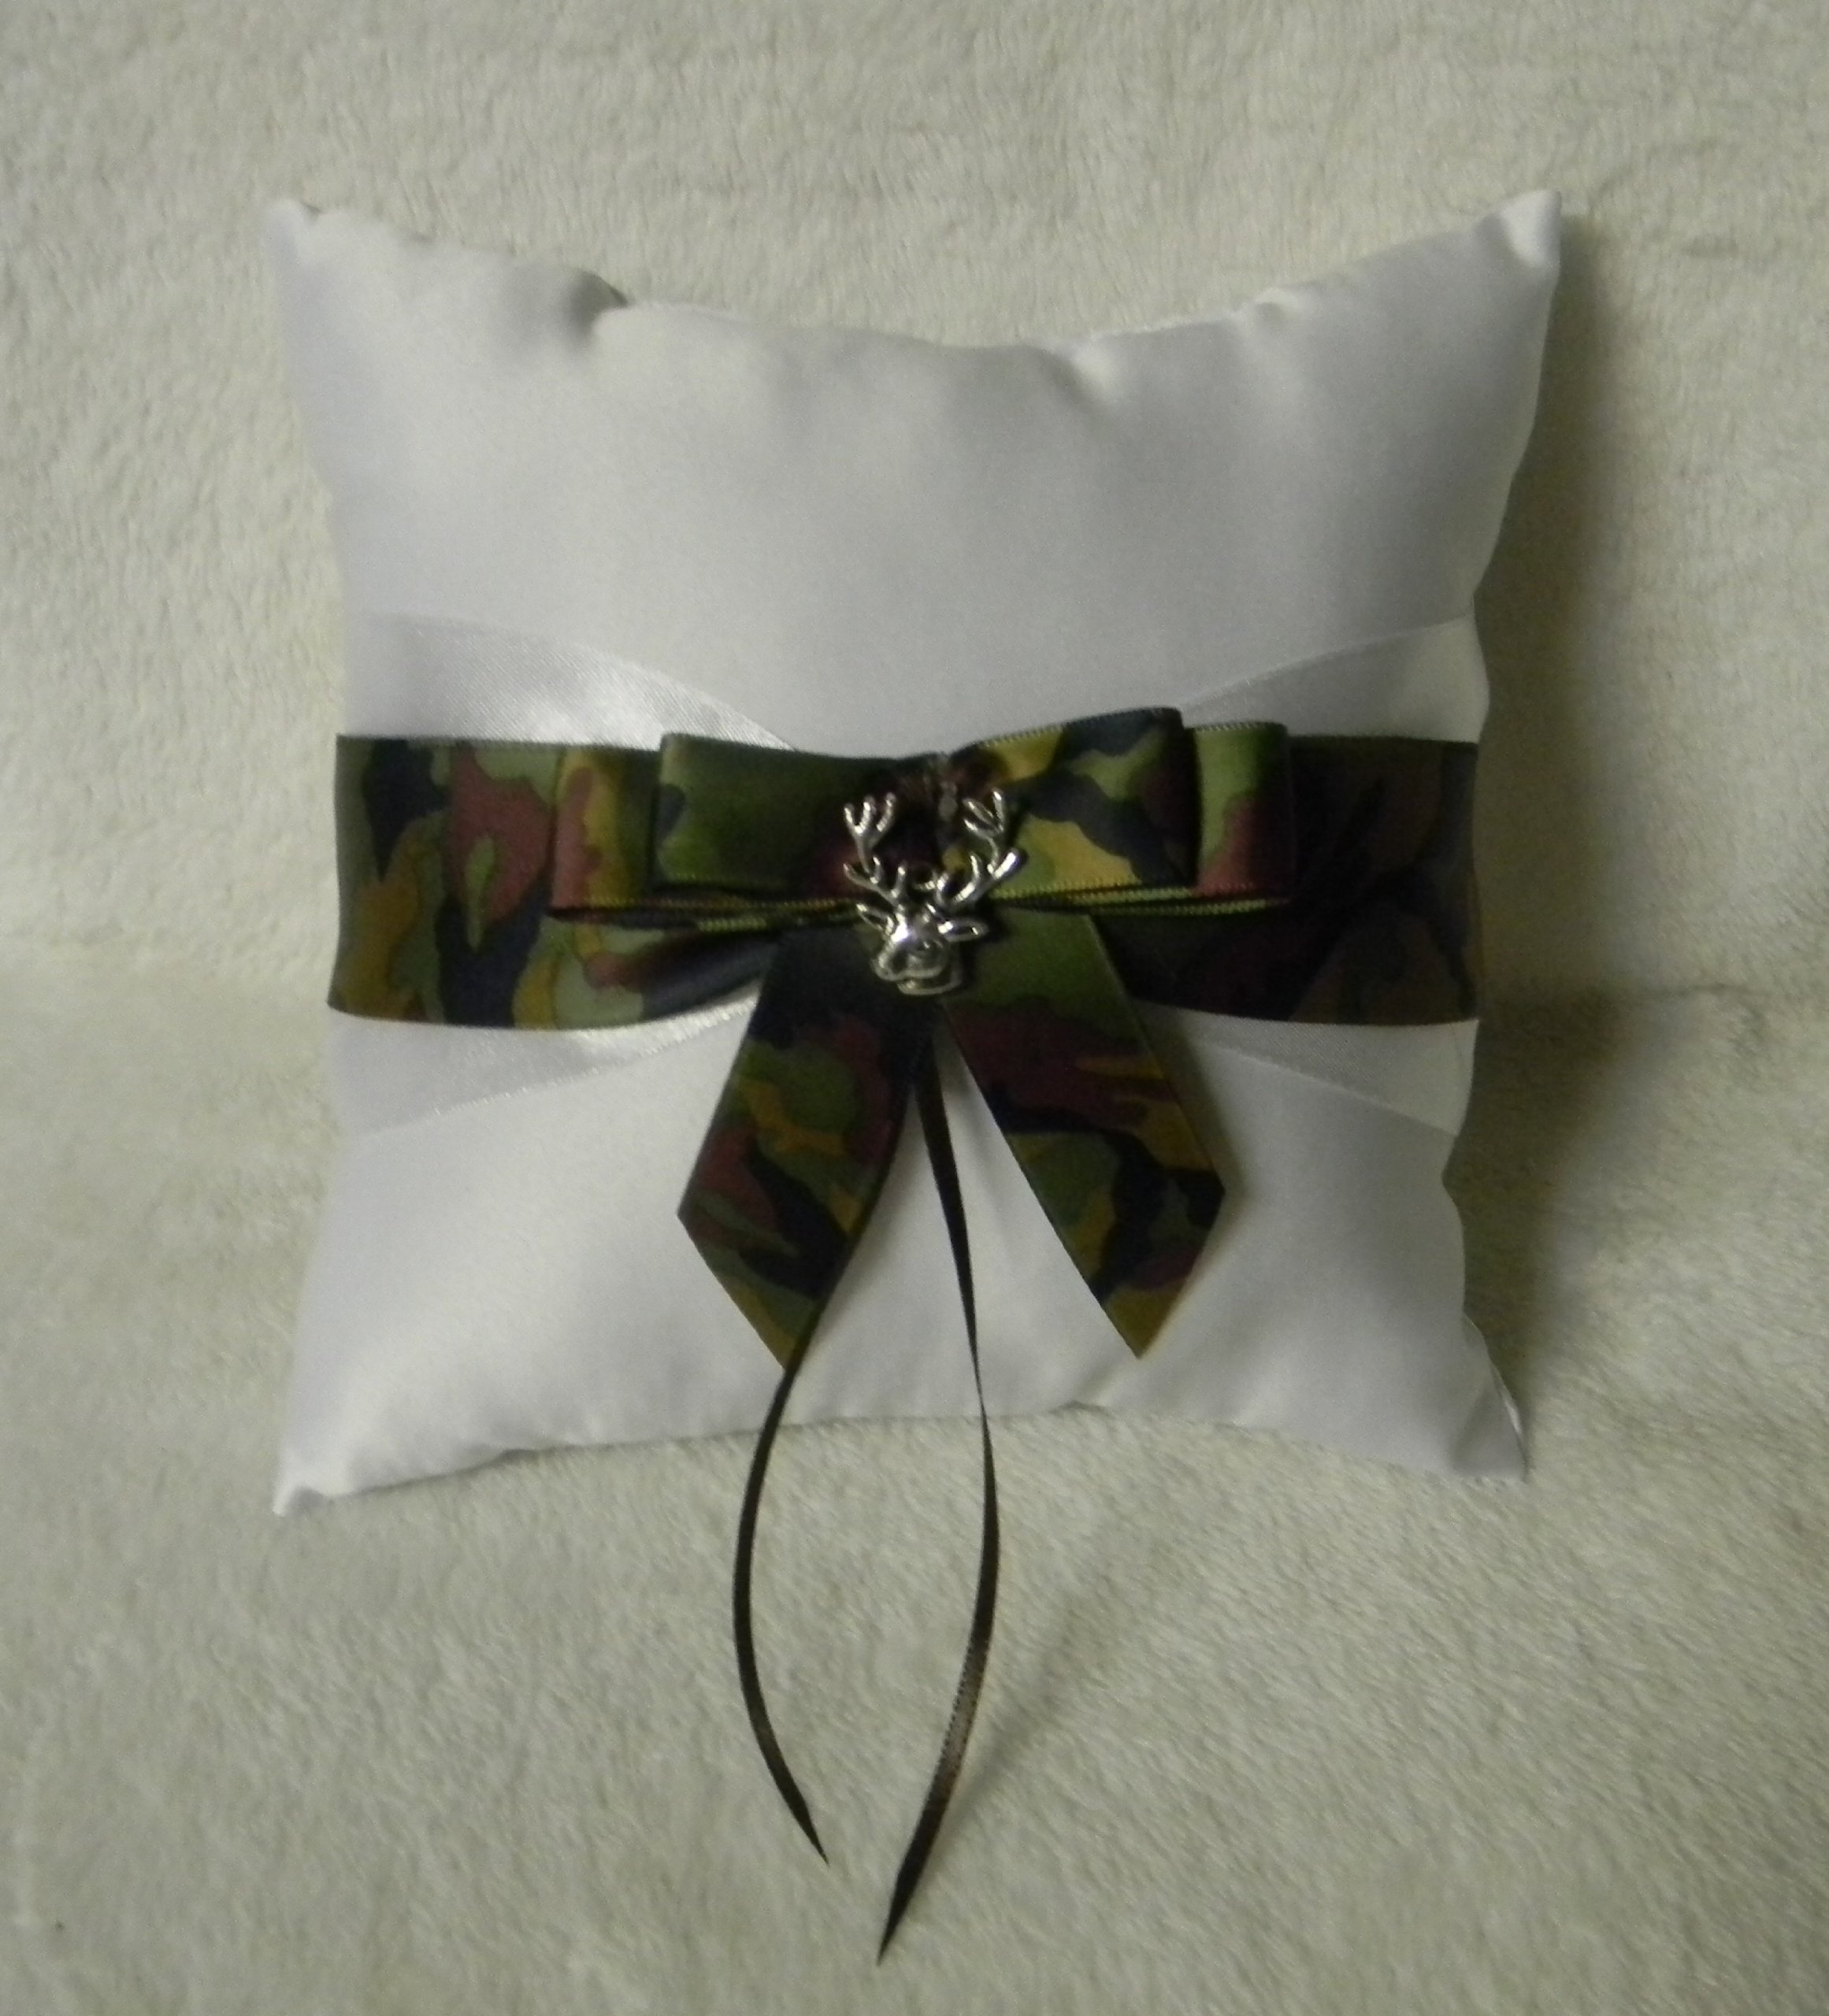 Wedding Camo Redneck Deer Hunter Hunting Ring bearer Pillow by Custom Design Wedding Supplies by Suzanne